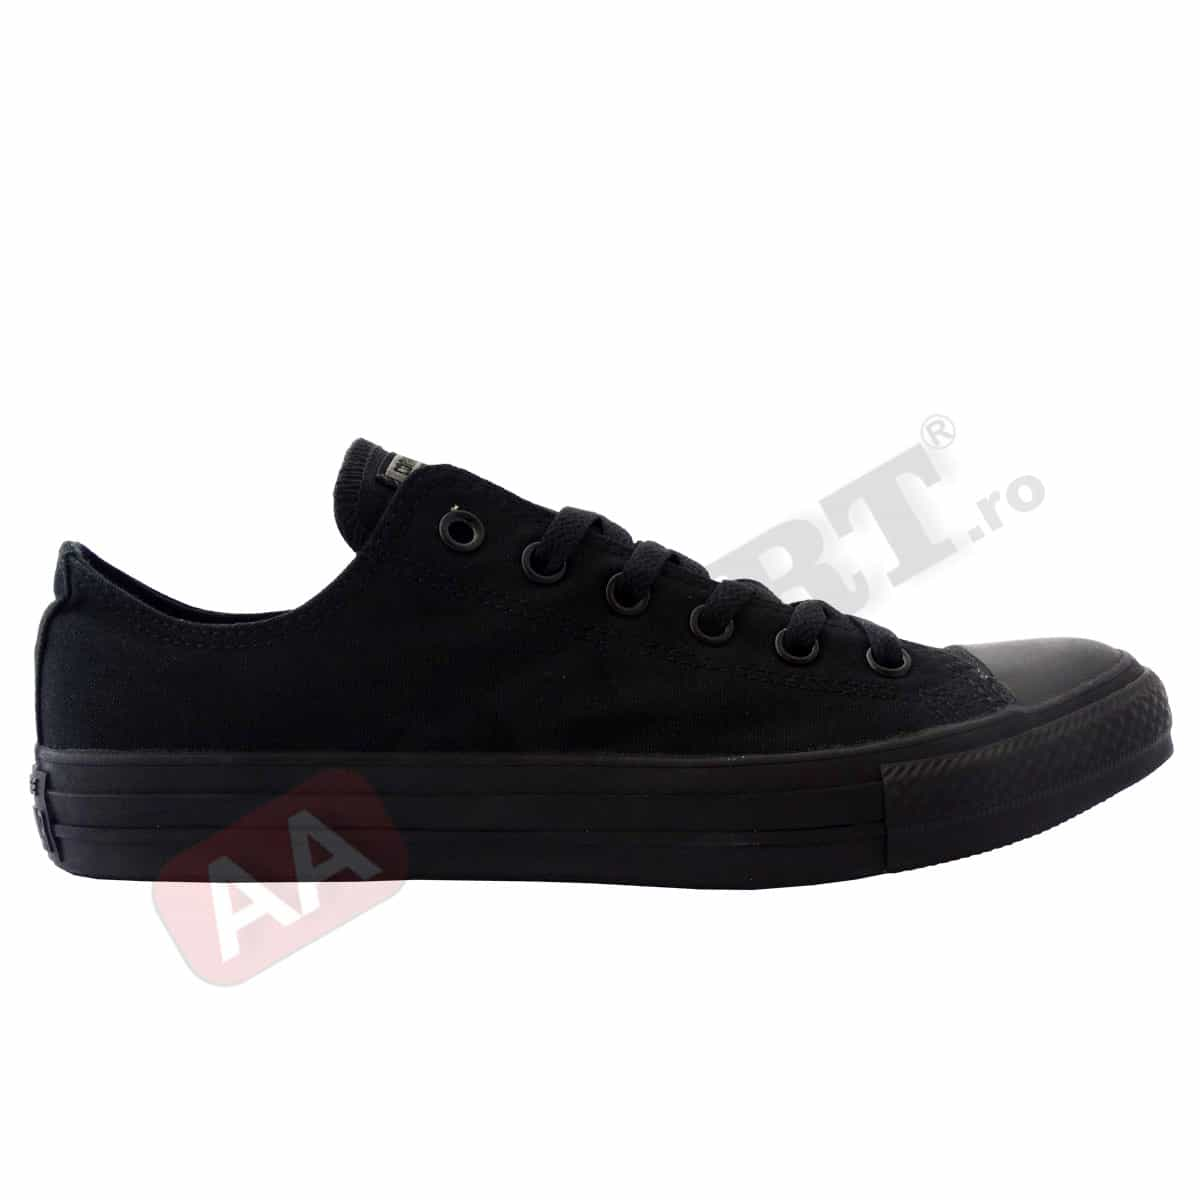 TENISI ORIGINALI CONVERSE C TAYLOR AS OX - M5039C